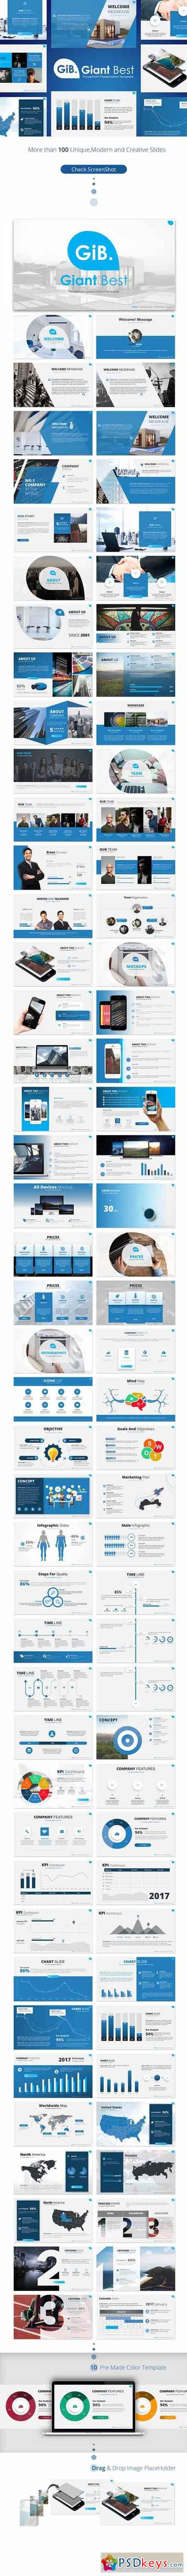 Giant Best PowerPoint Presentation Template 20348756